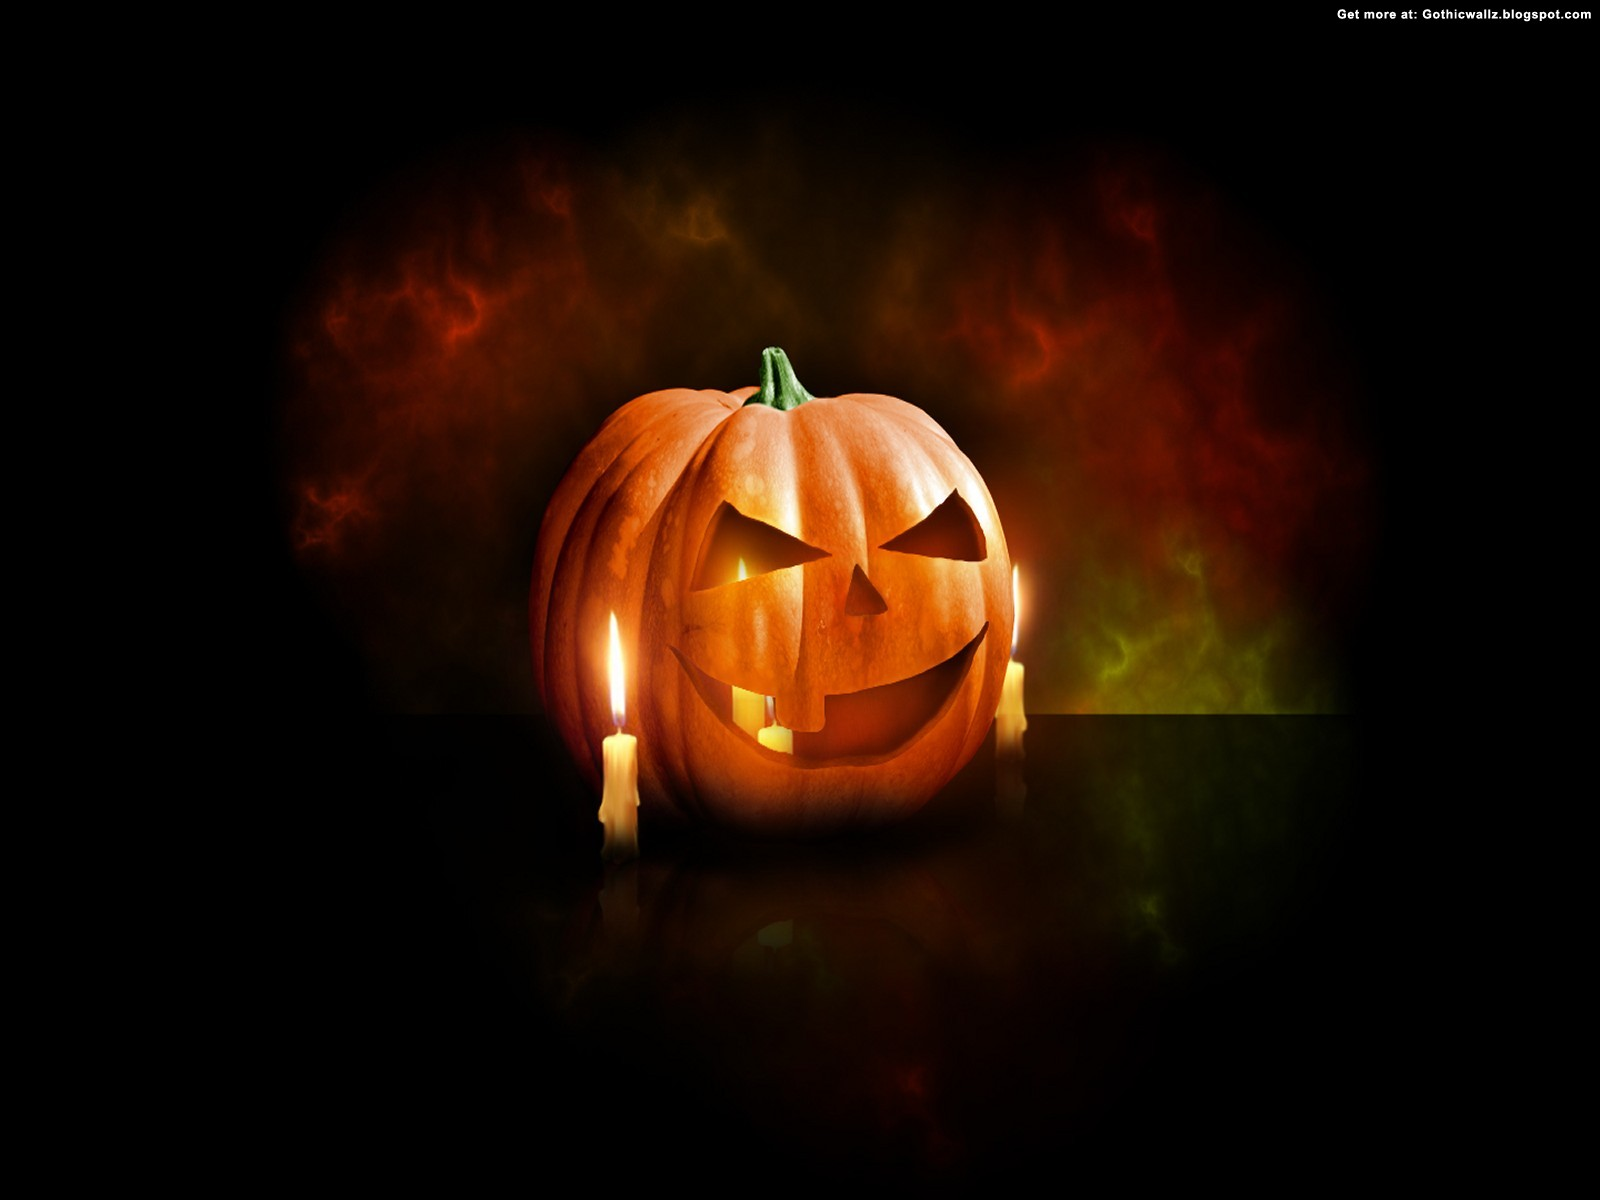 halloween pumpkin | Gothic Wallpaper Download